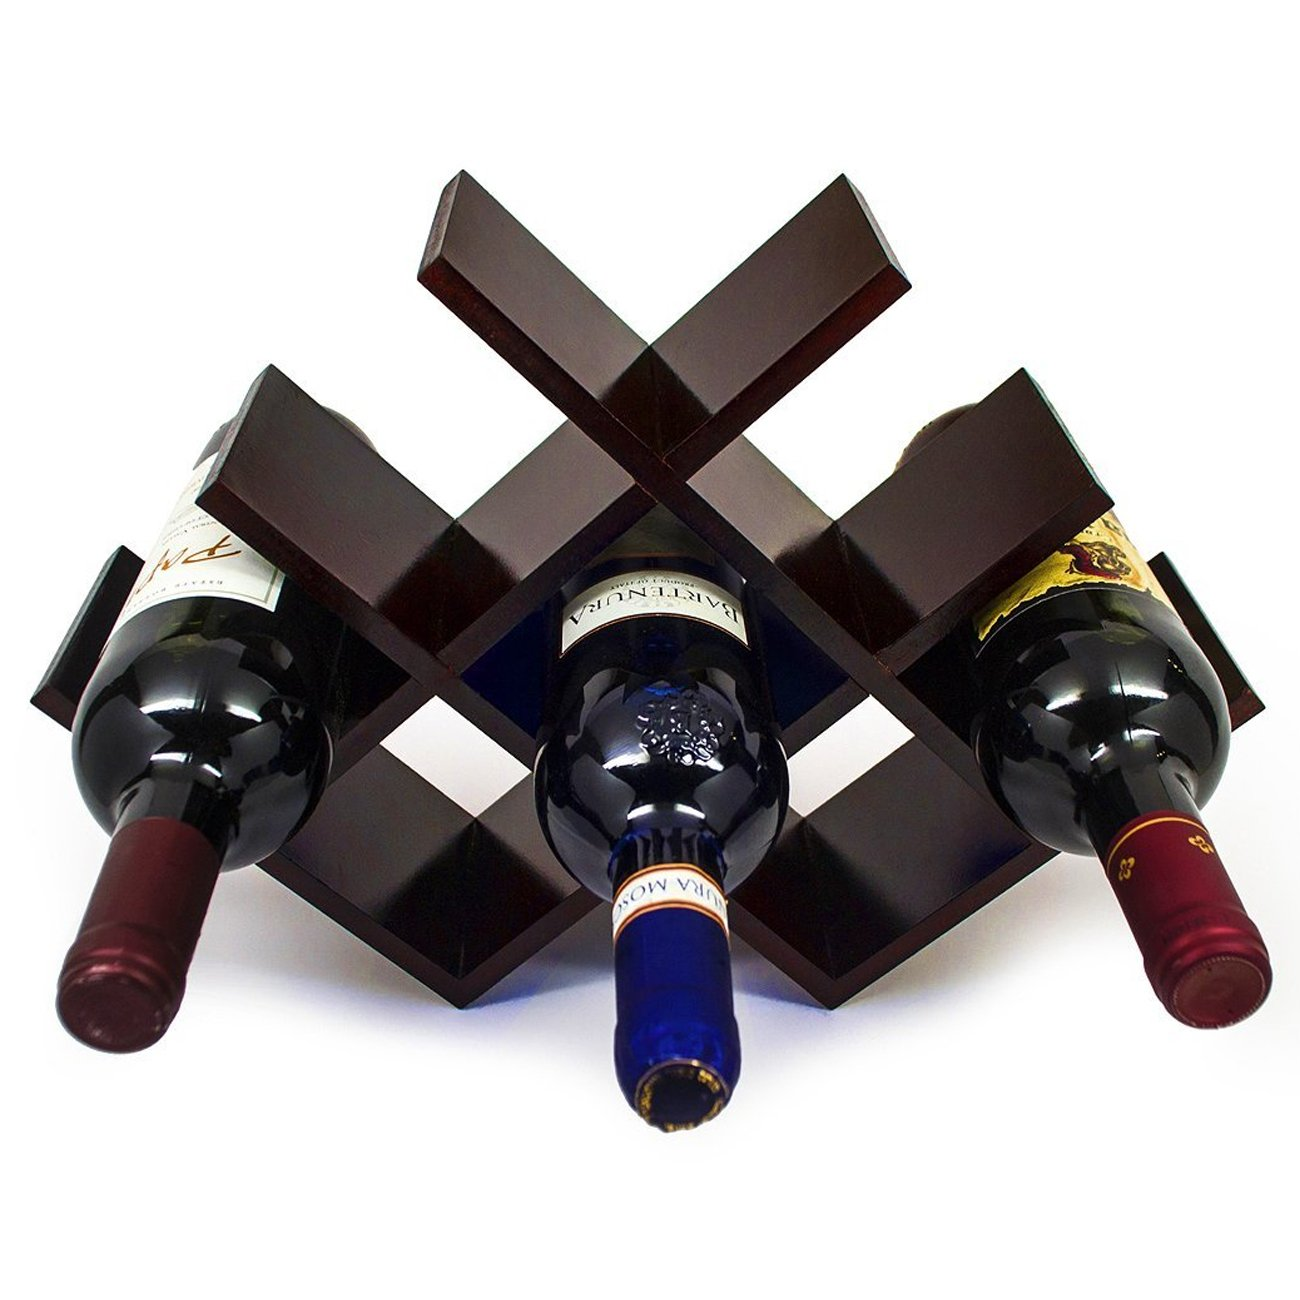 catalog small countertops for rack wine racks bottle colors hang available or capacity several to c bali